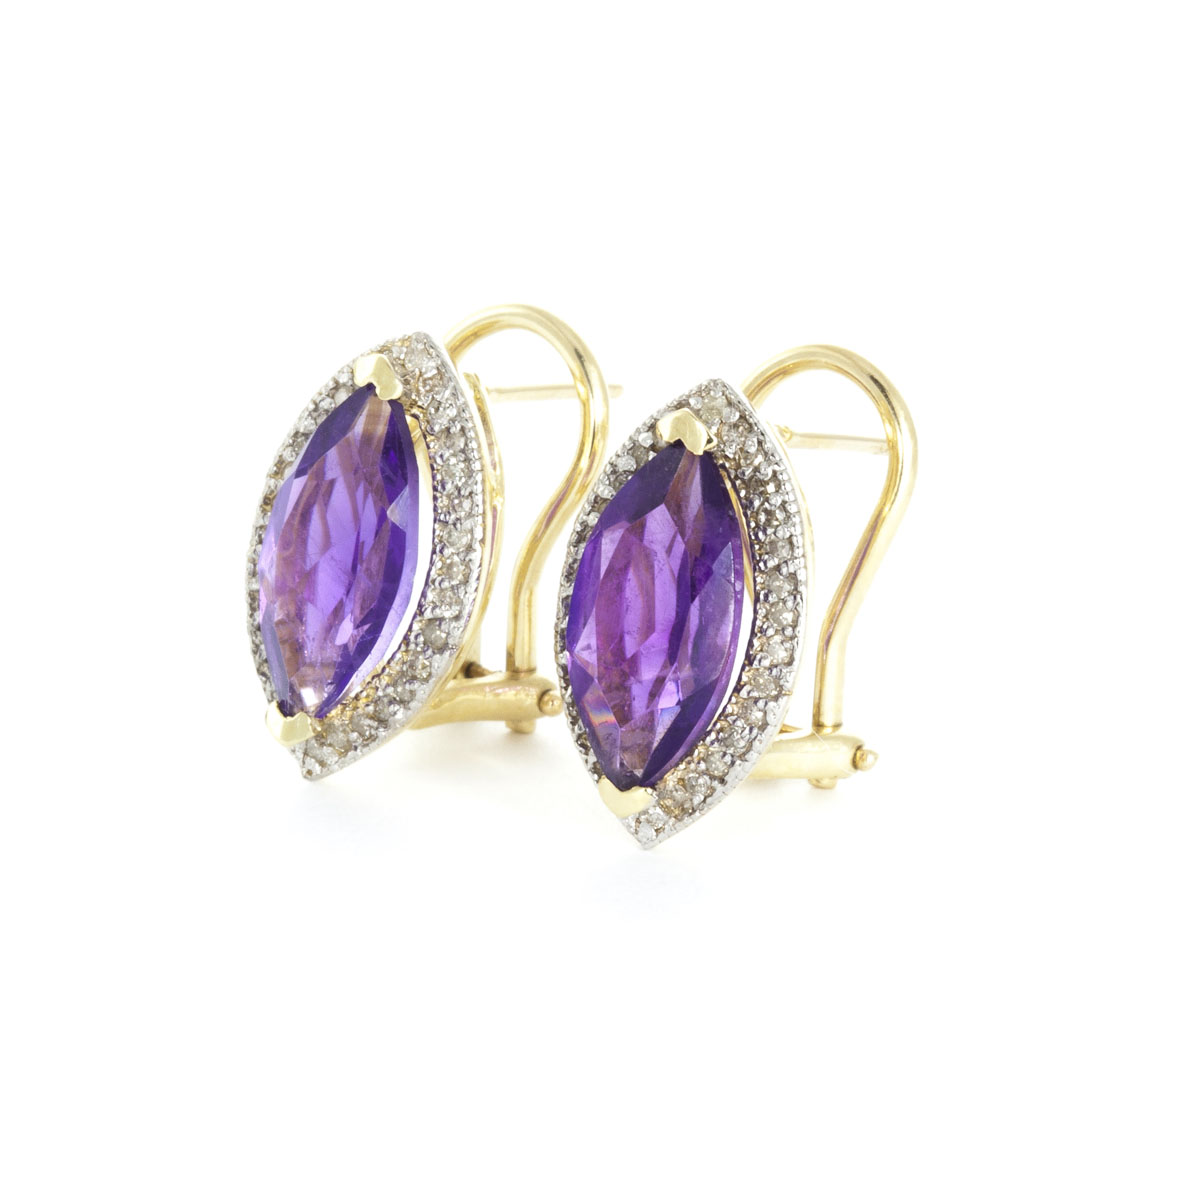 Amethyst French Clip Halo Earrings 3.6 ctw in 9ct Gold